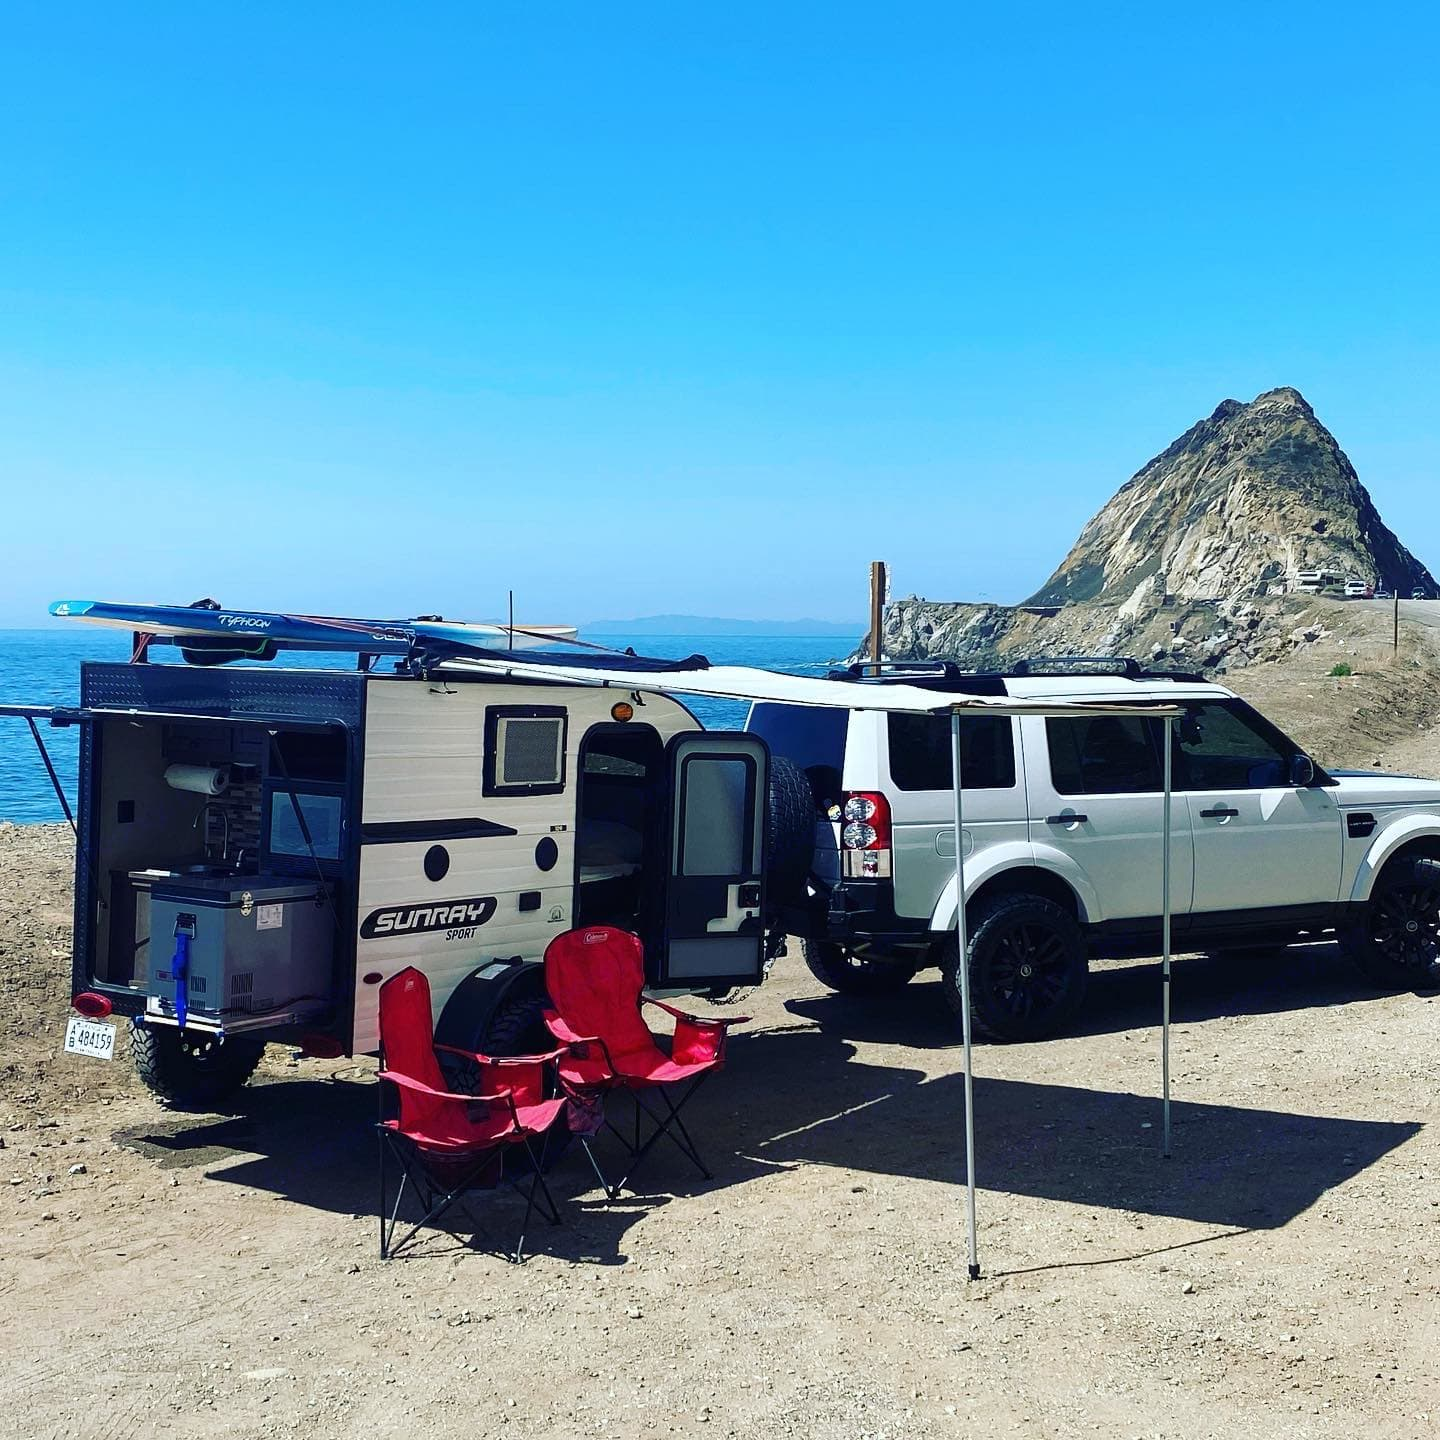 Exterior on a trip to Point Mugu. SUNRAY 109 Sport 2020